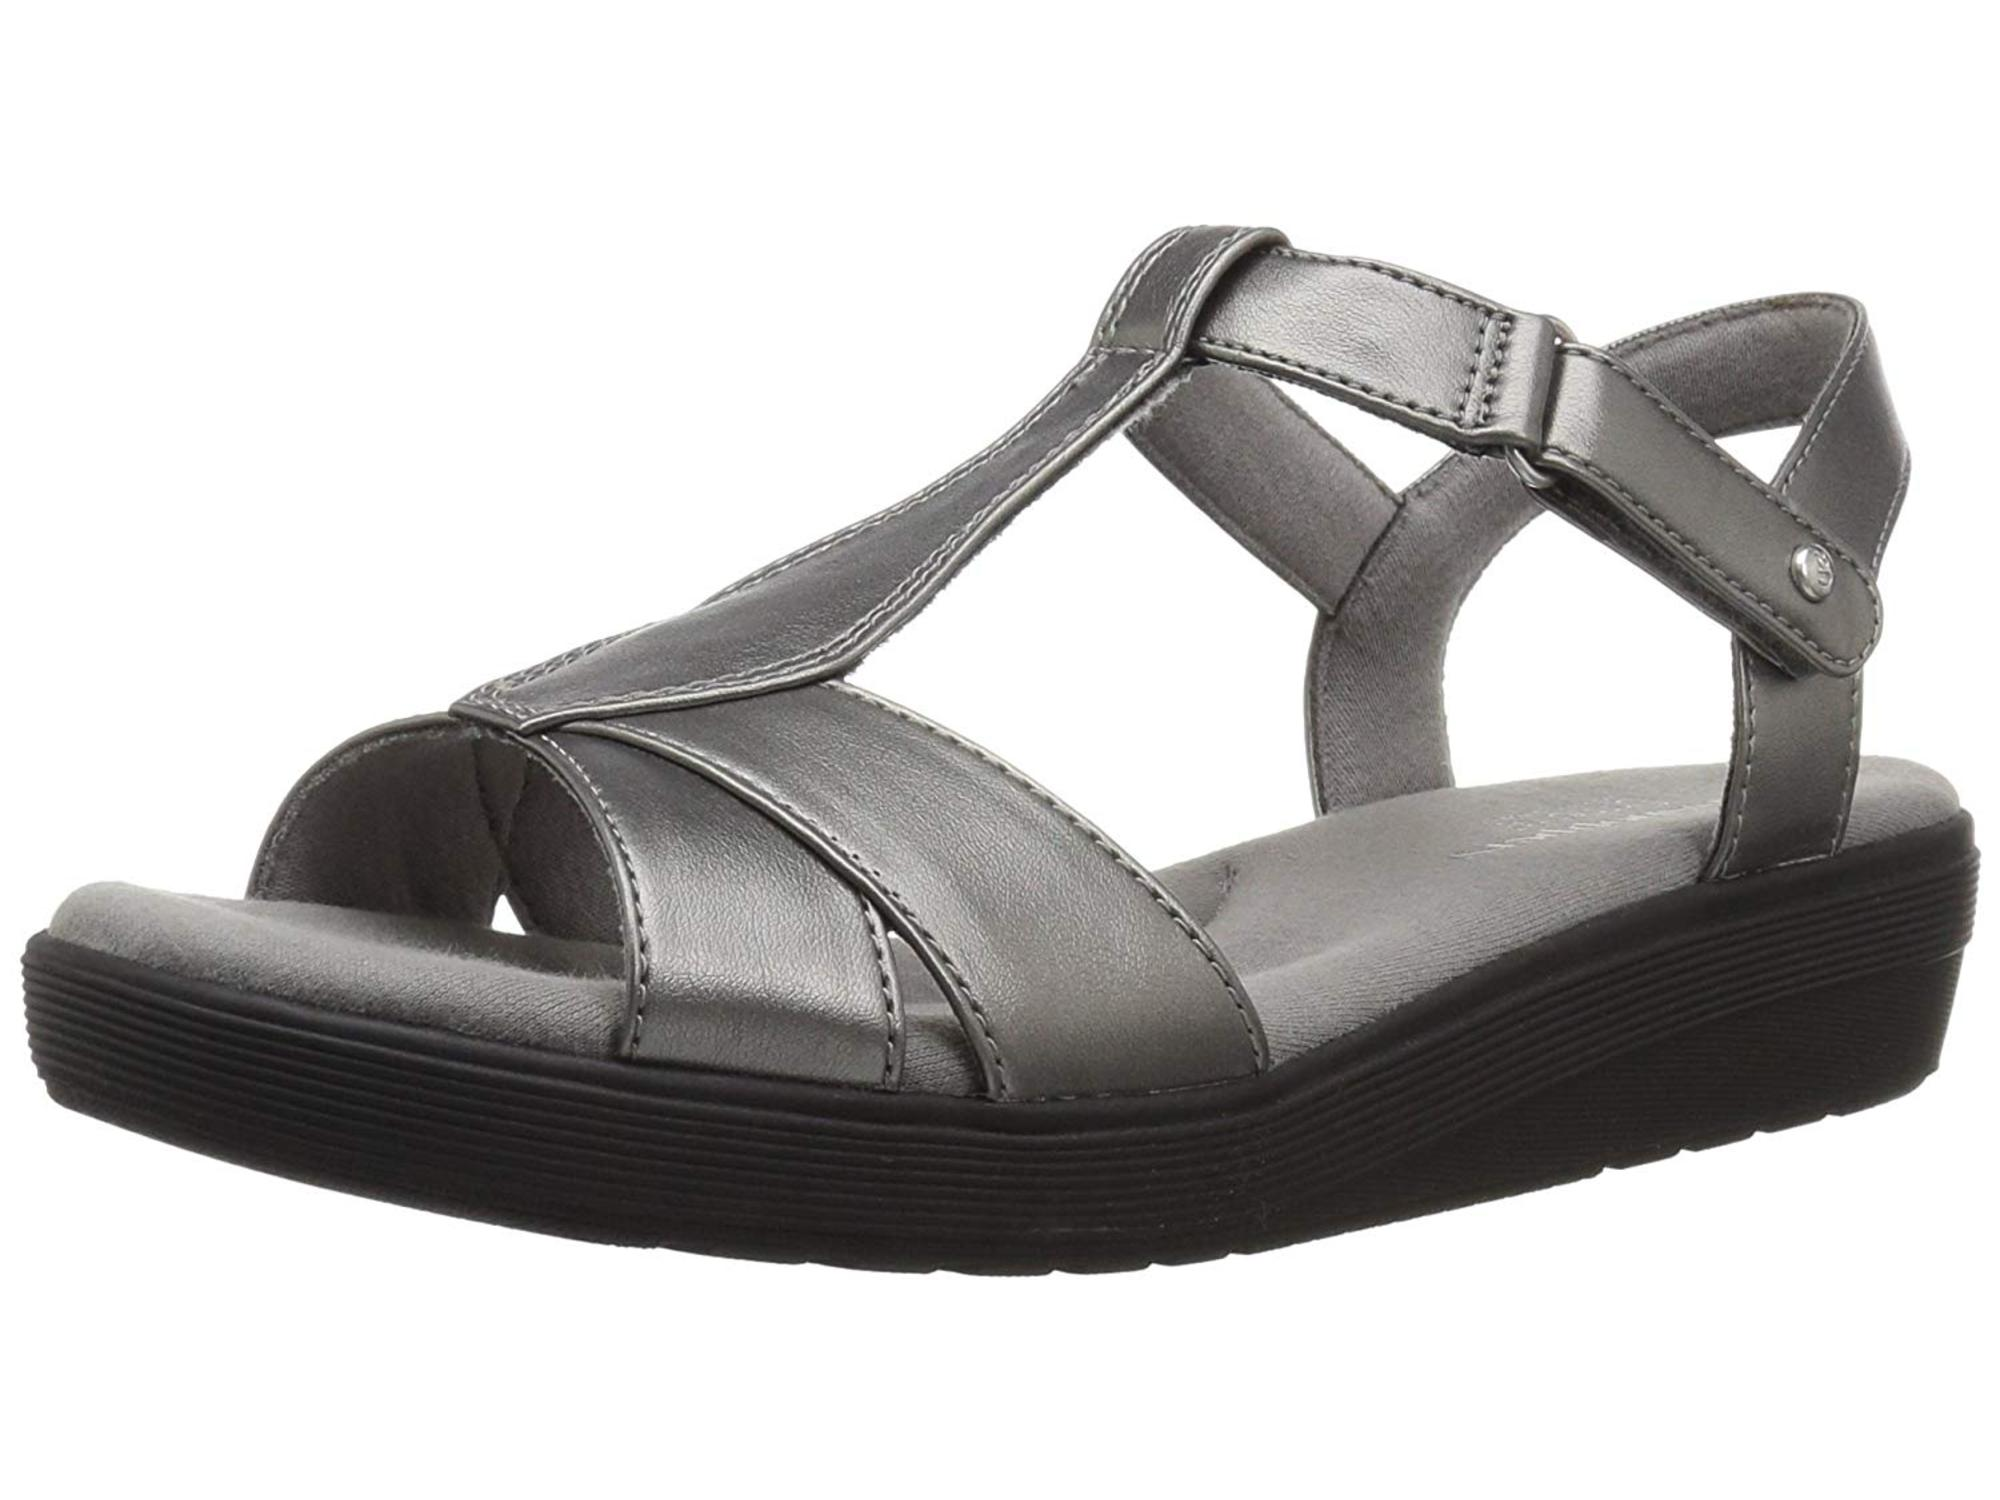 Grasshoppers Womens Clover Stripe Stone Open Toe Casual T-Strap Sandals by Grasshoppers